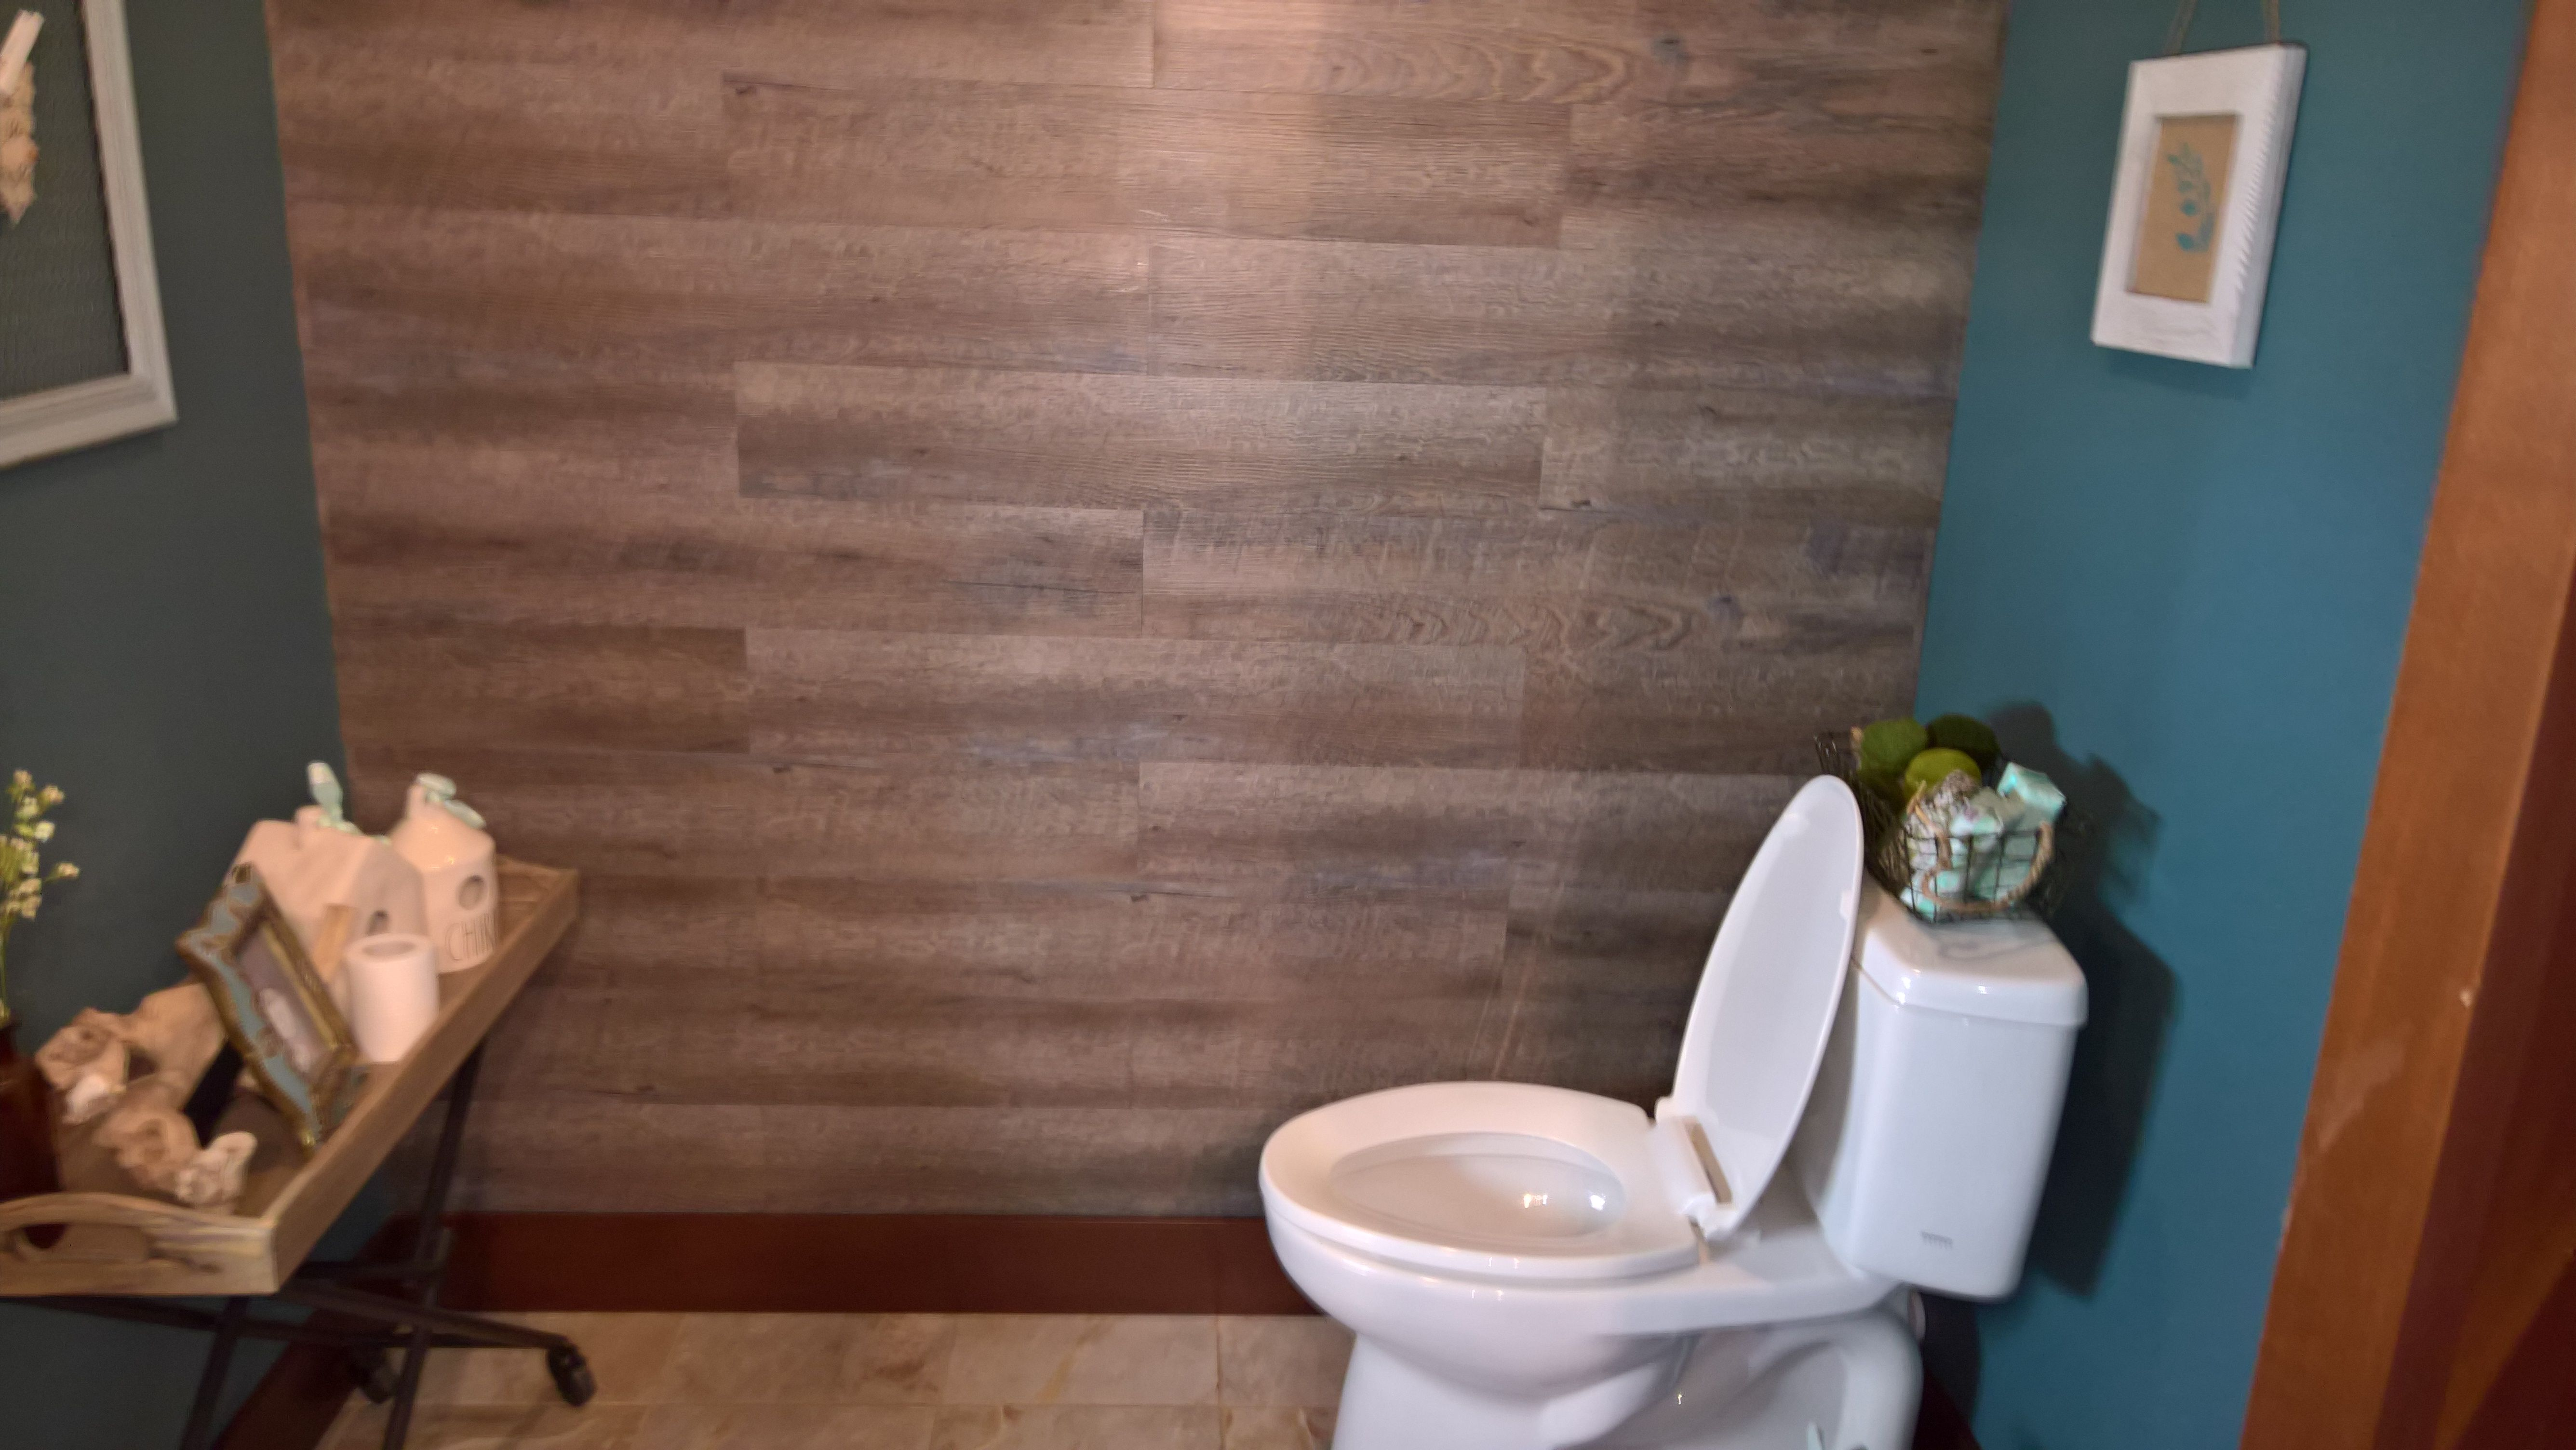 Used peel and stick vinyl floor tile from Lowes for 89